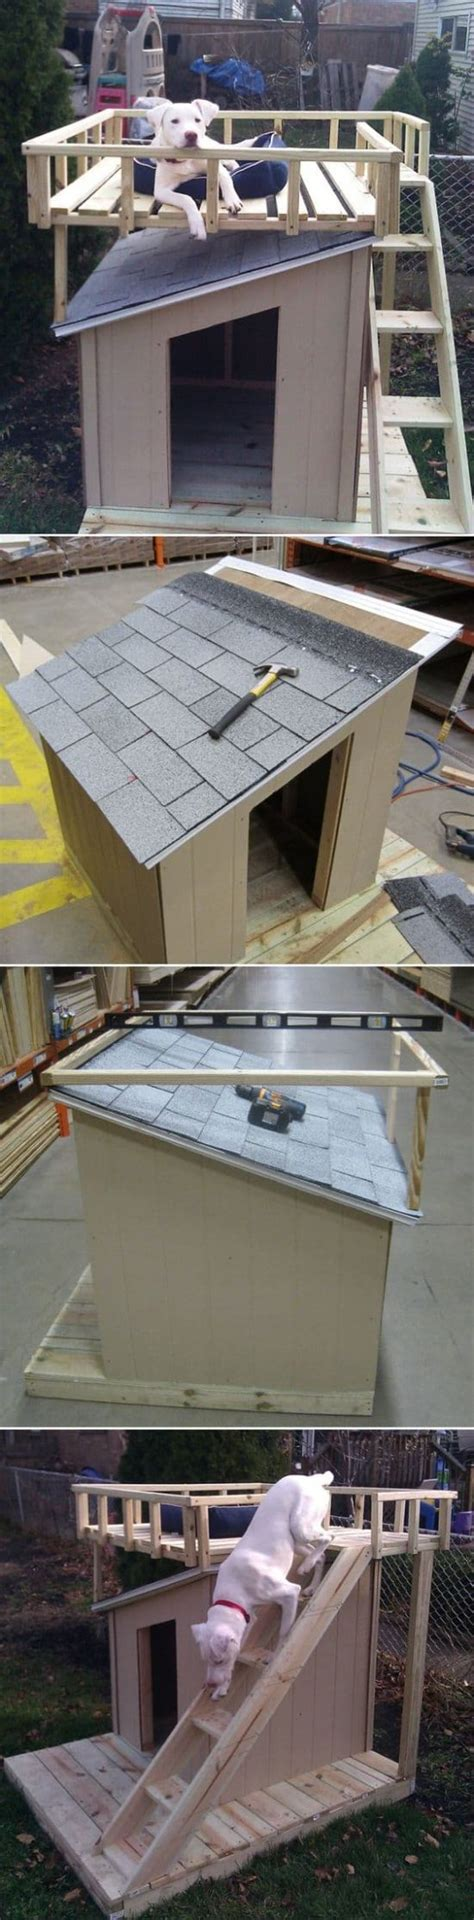 dog house with deck on top dog house with rooftop deck ideas video tutorial